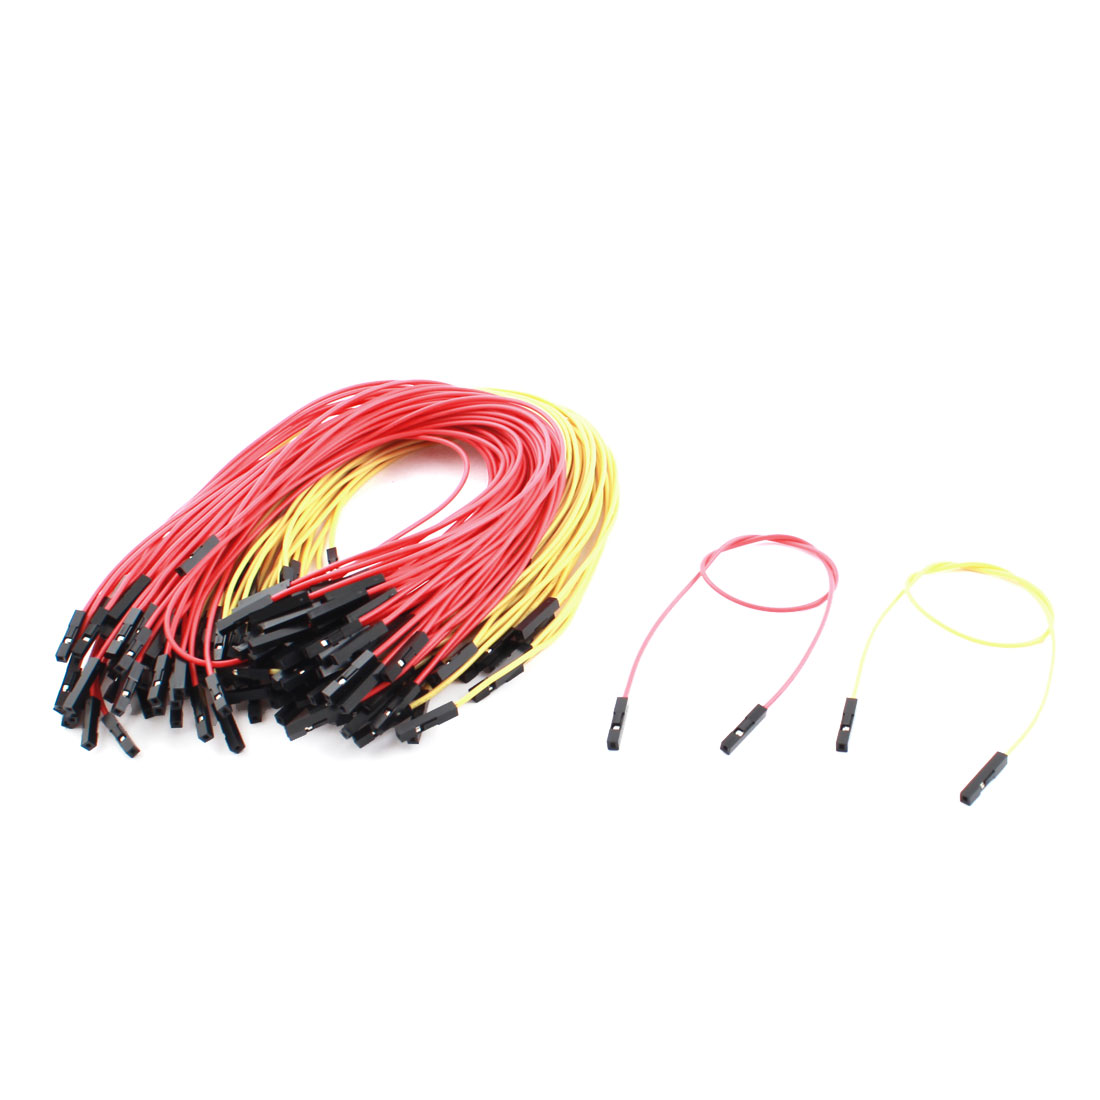 100pcs 1P-1P F/F PCB Test Solderless Jumper Cable Wire Line 2.54mm 25cm